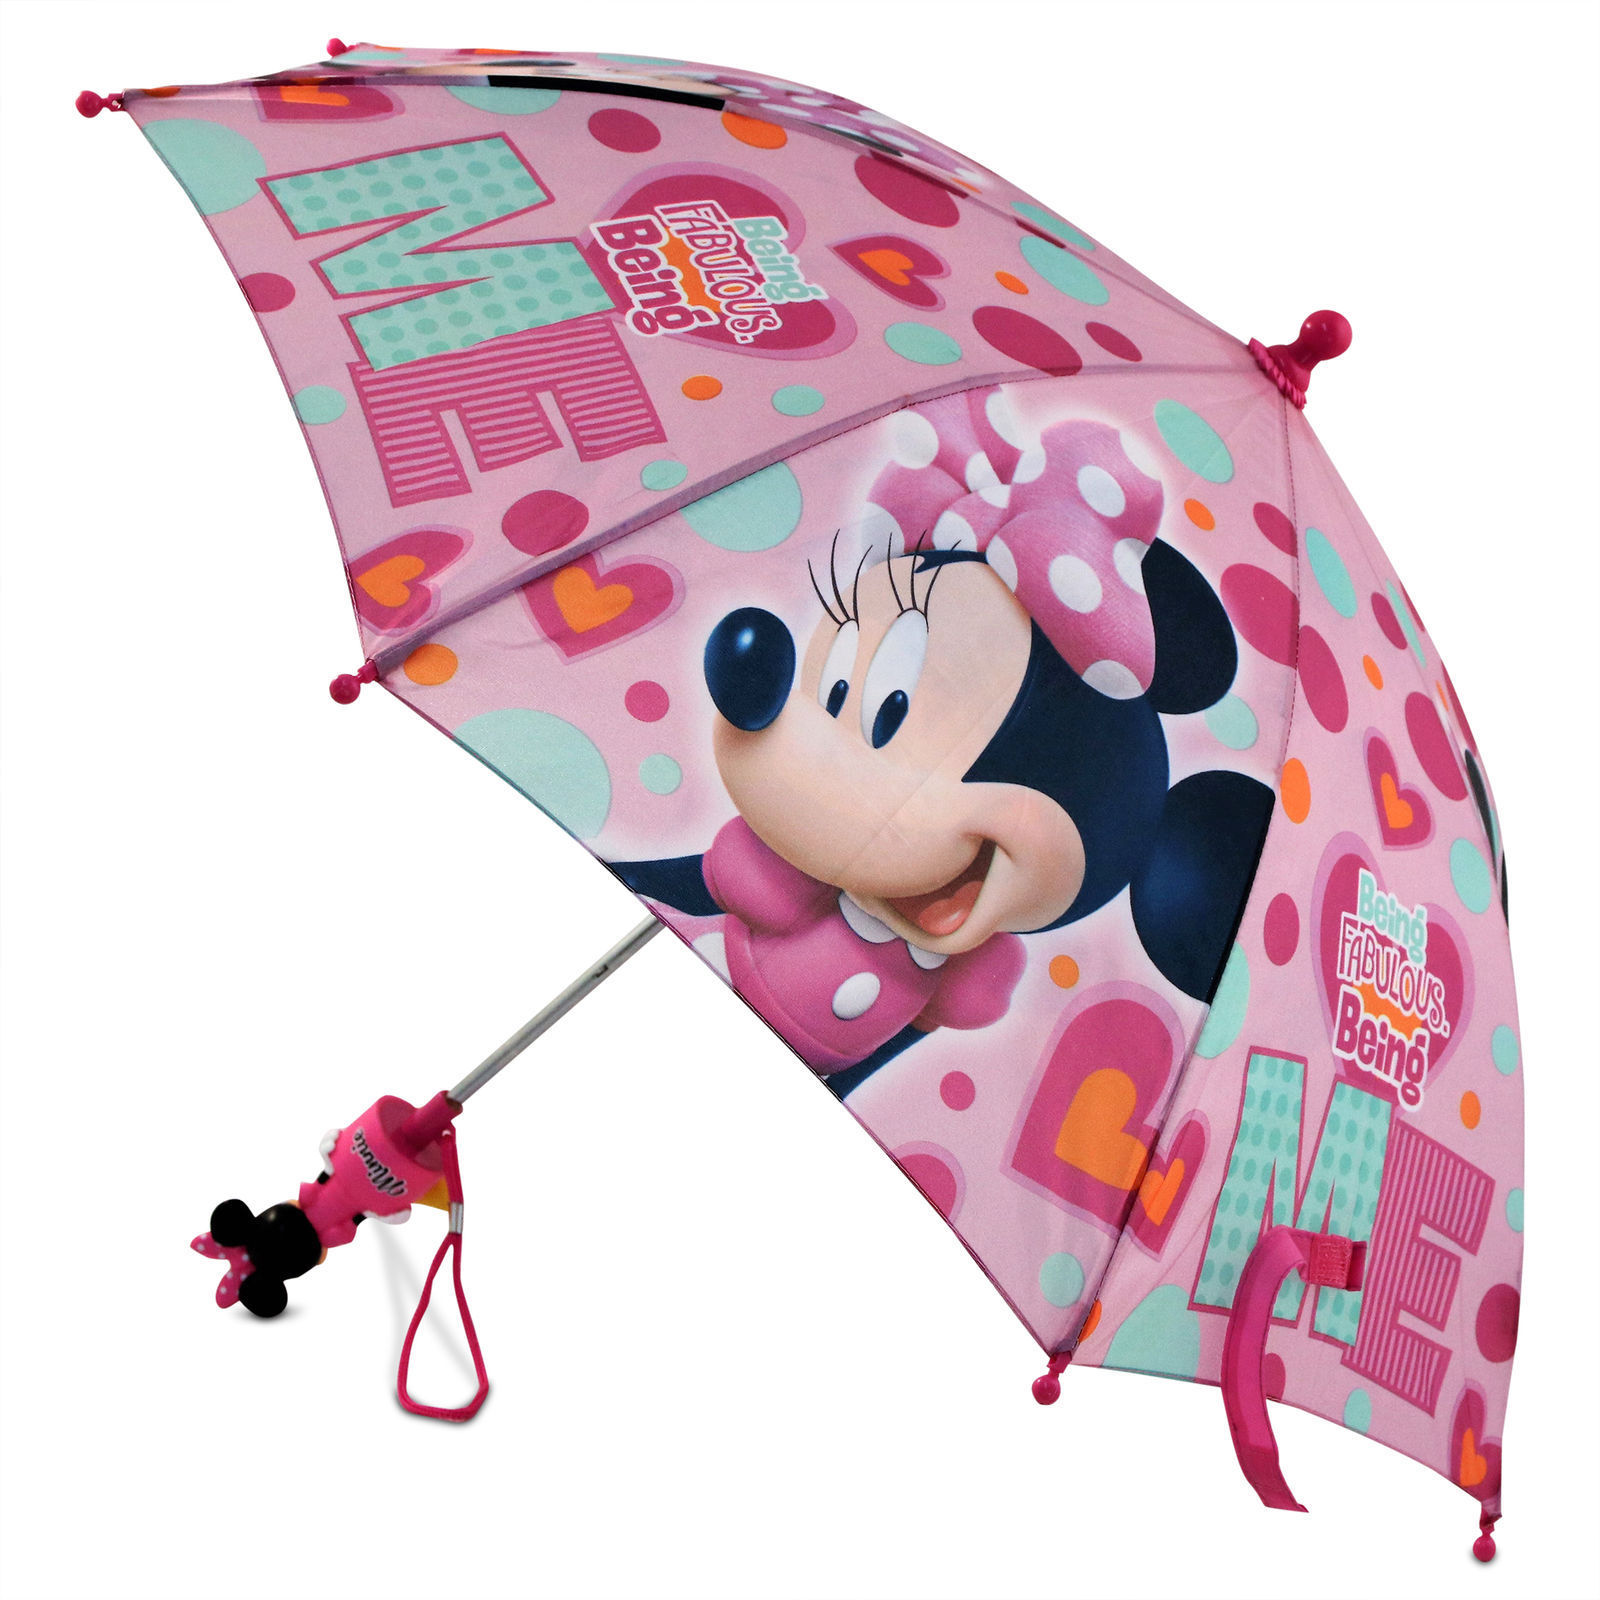 Minnie Mouse Figure Molded Handle Umbrella for Toddler Girl Kid Sized 3-7